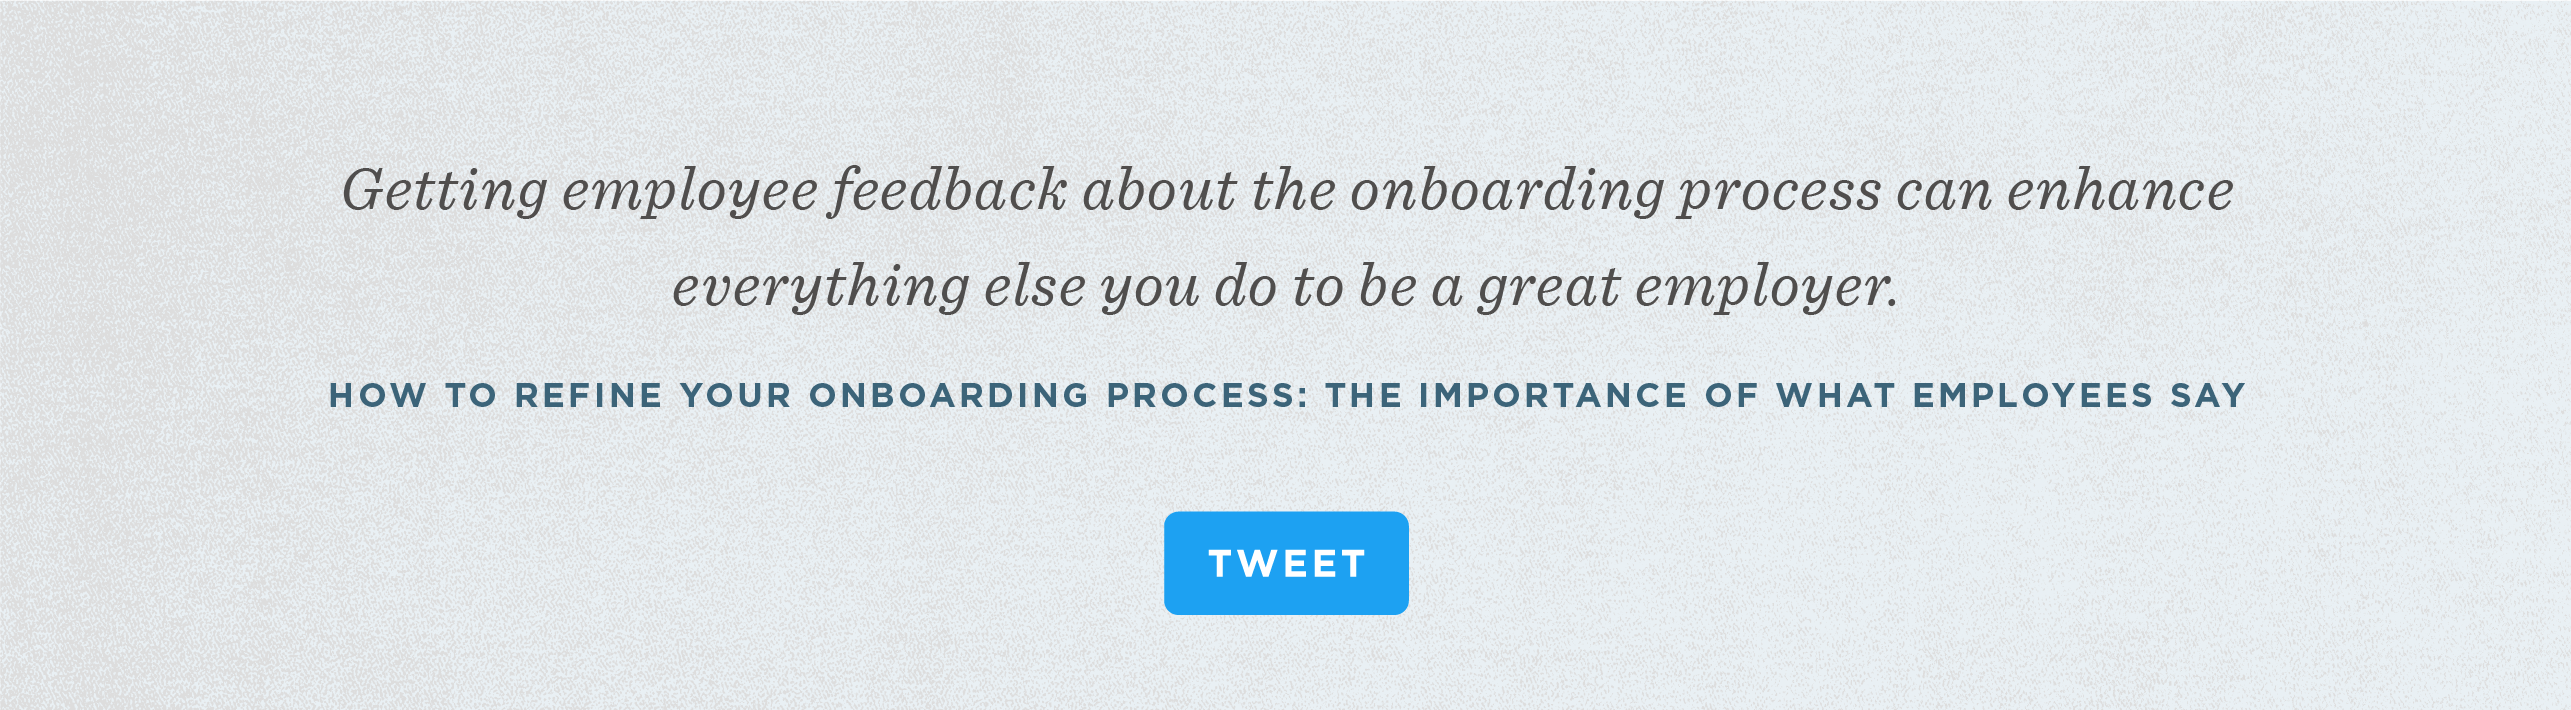 Onboarding Quote.png